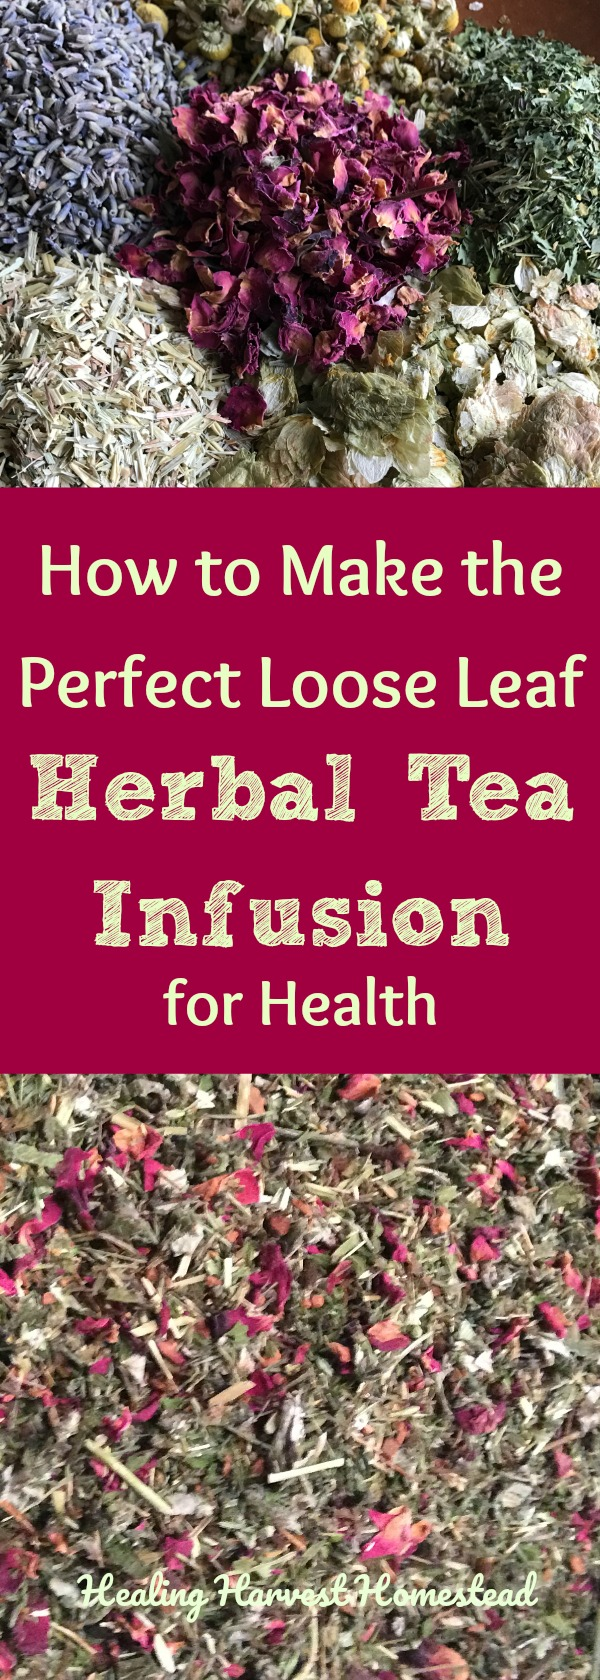 "One of the most commonly asked questions I get as an herbalist is, ""How do you use loose leaf herb tea? How do you make the tea?"" If you are new to preparing loose leaf teas, you might feel leery of giving it a try, but it is really very simple and easy! Here are our two favorite ways of infusing herbal tea blends---using a cup or a Mason jar! Learn how to make an herbal tea infusion for health!"